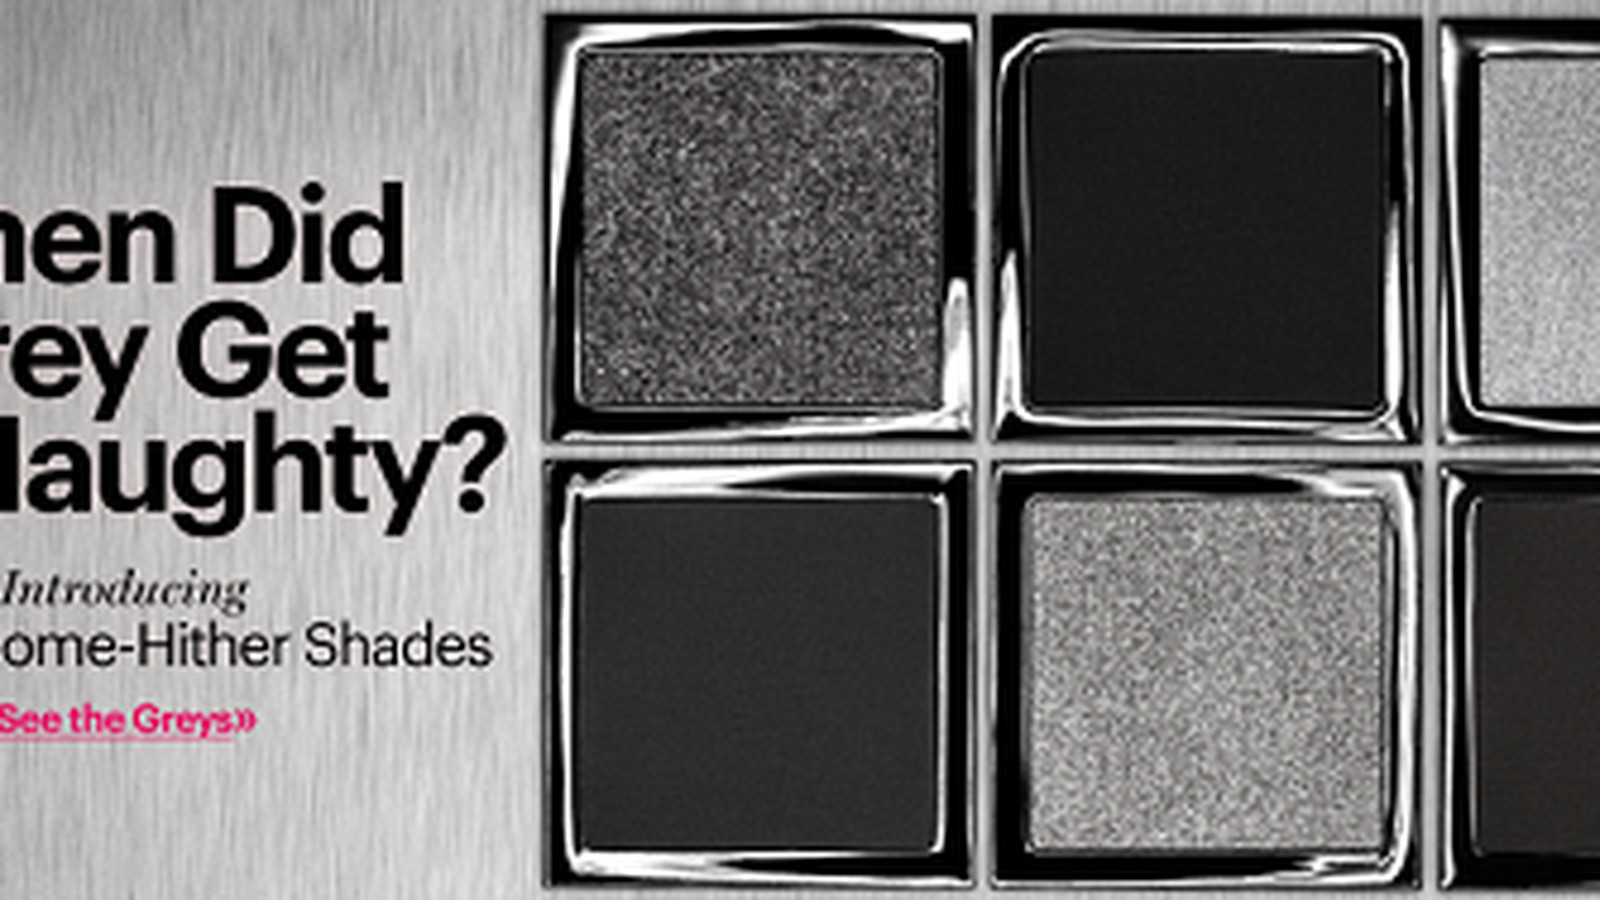 bobbi brown s shades of grey makeup collection actually only bobbi brown s 50 shades of grey makeup collection actually only has like 6 shades of grey racked